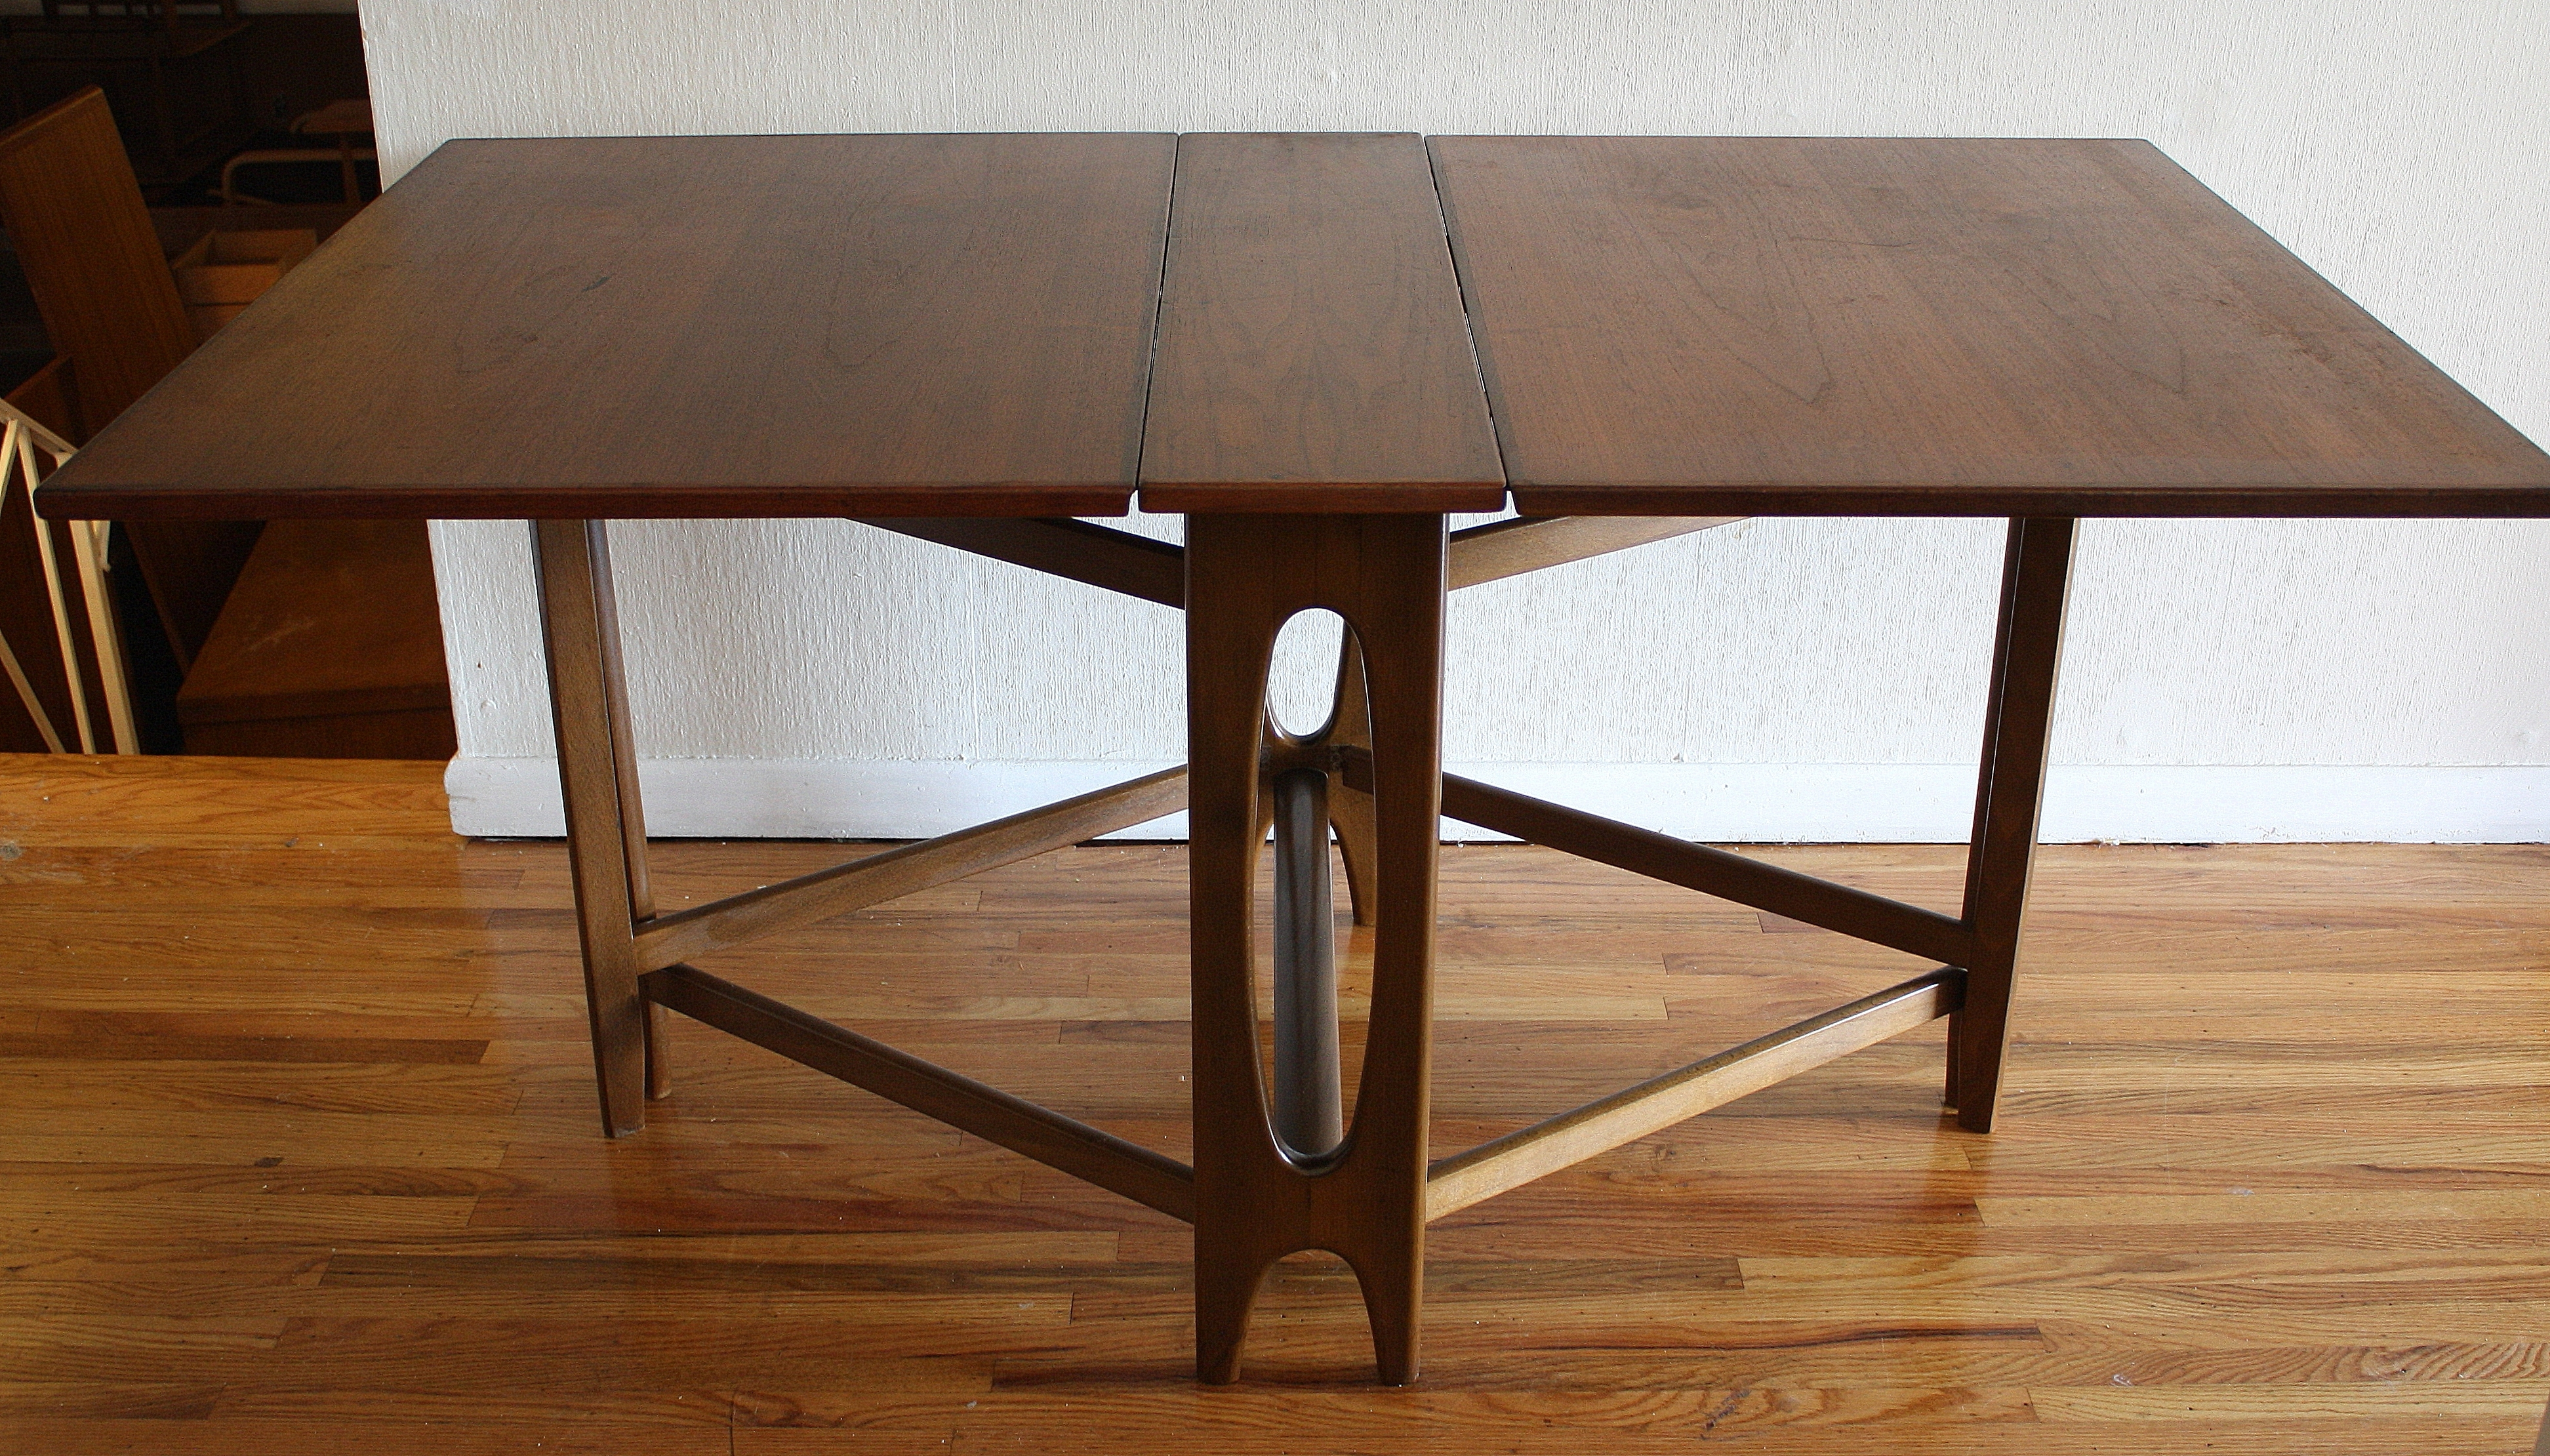 Cheap Folding Dining Tables Throughout Current Dining Room Designs: Wooden Floor White Wall Simplye Style Folding (View 7 of 25)